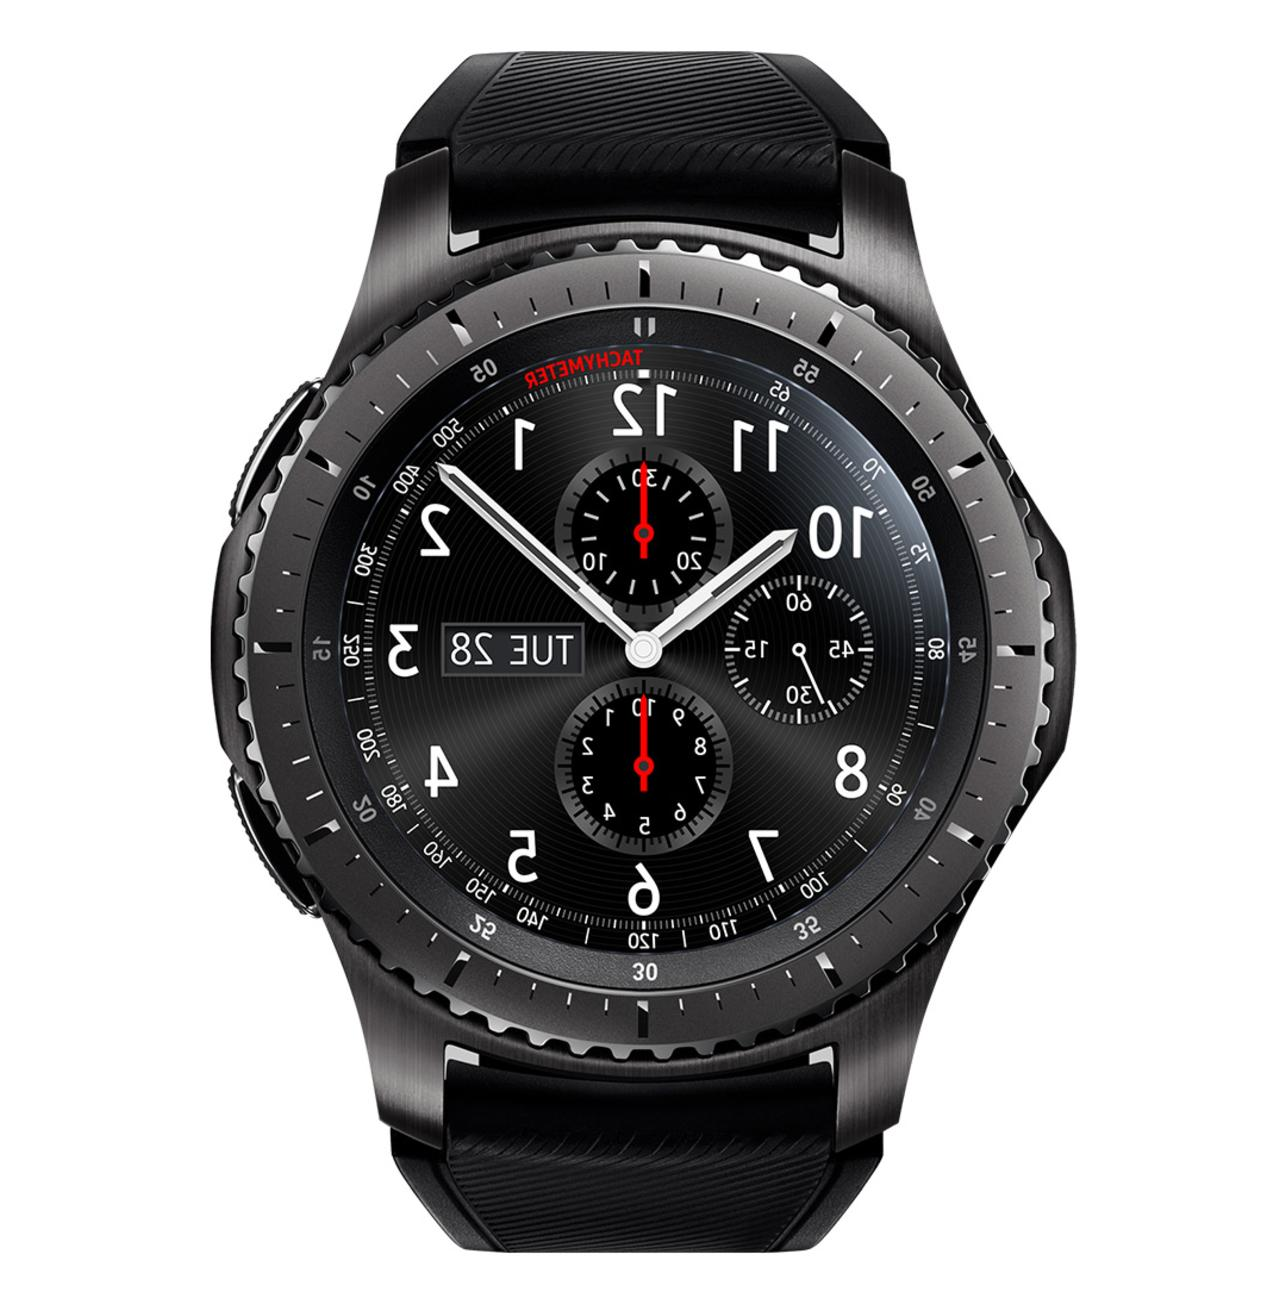 Samsung S3 Frontier Smart Stainless Steel Black Silicone Strap